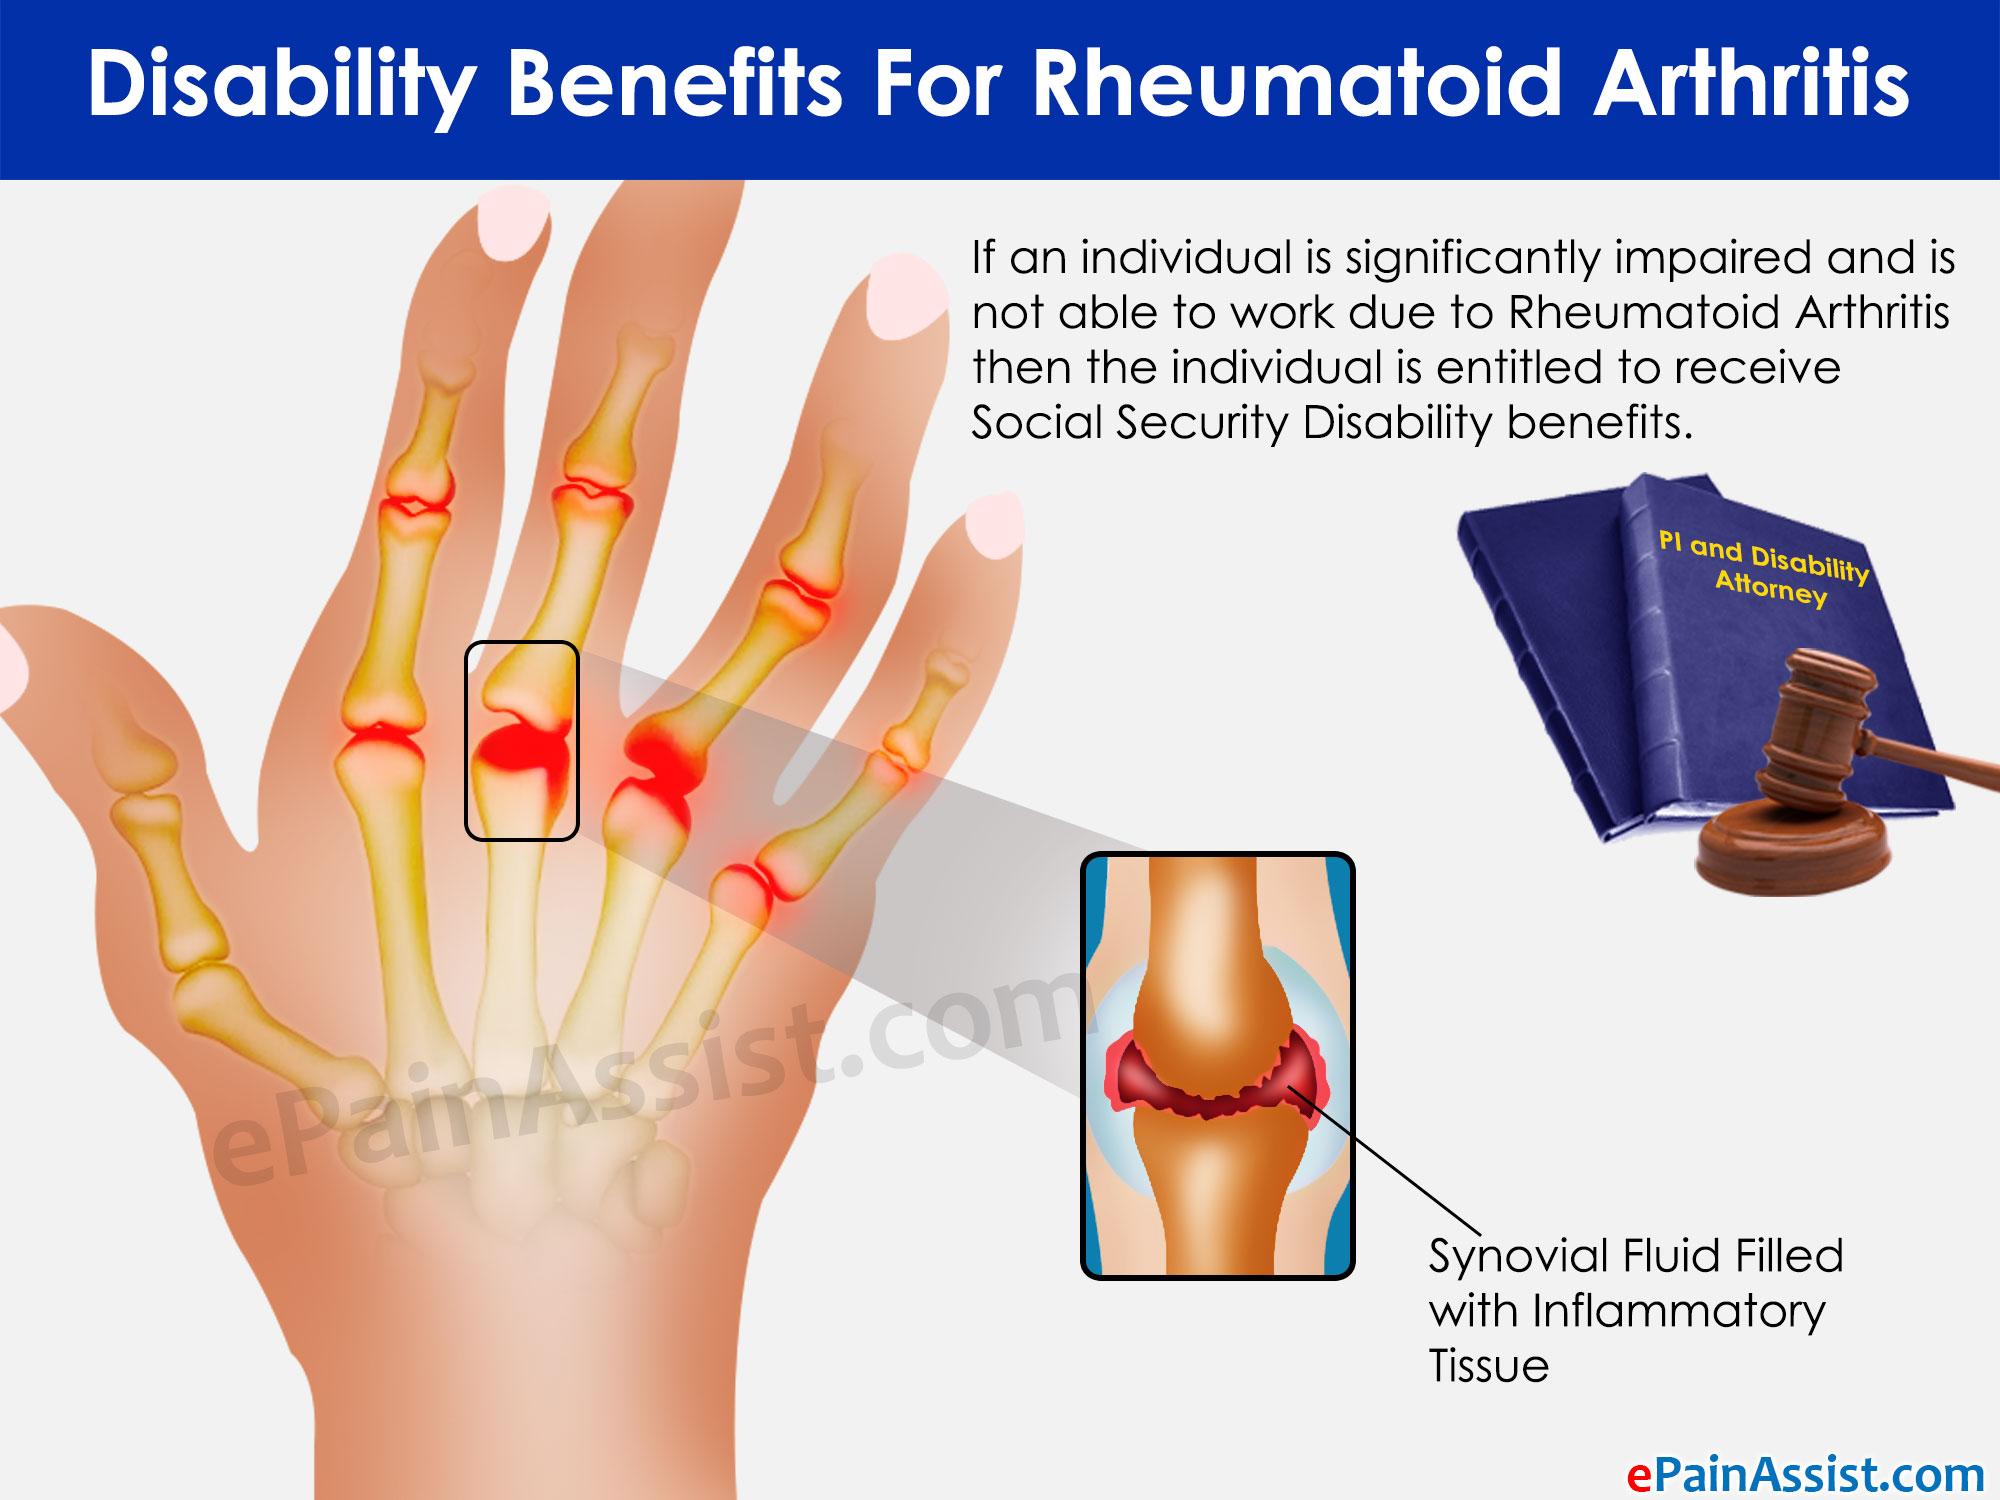 Rheumatoid Arthritis: When and How to Hire Help